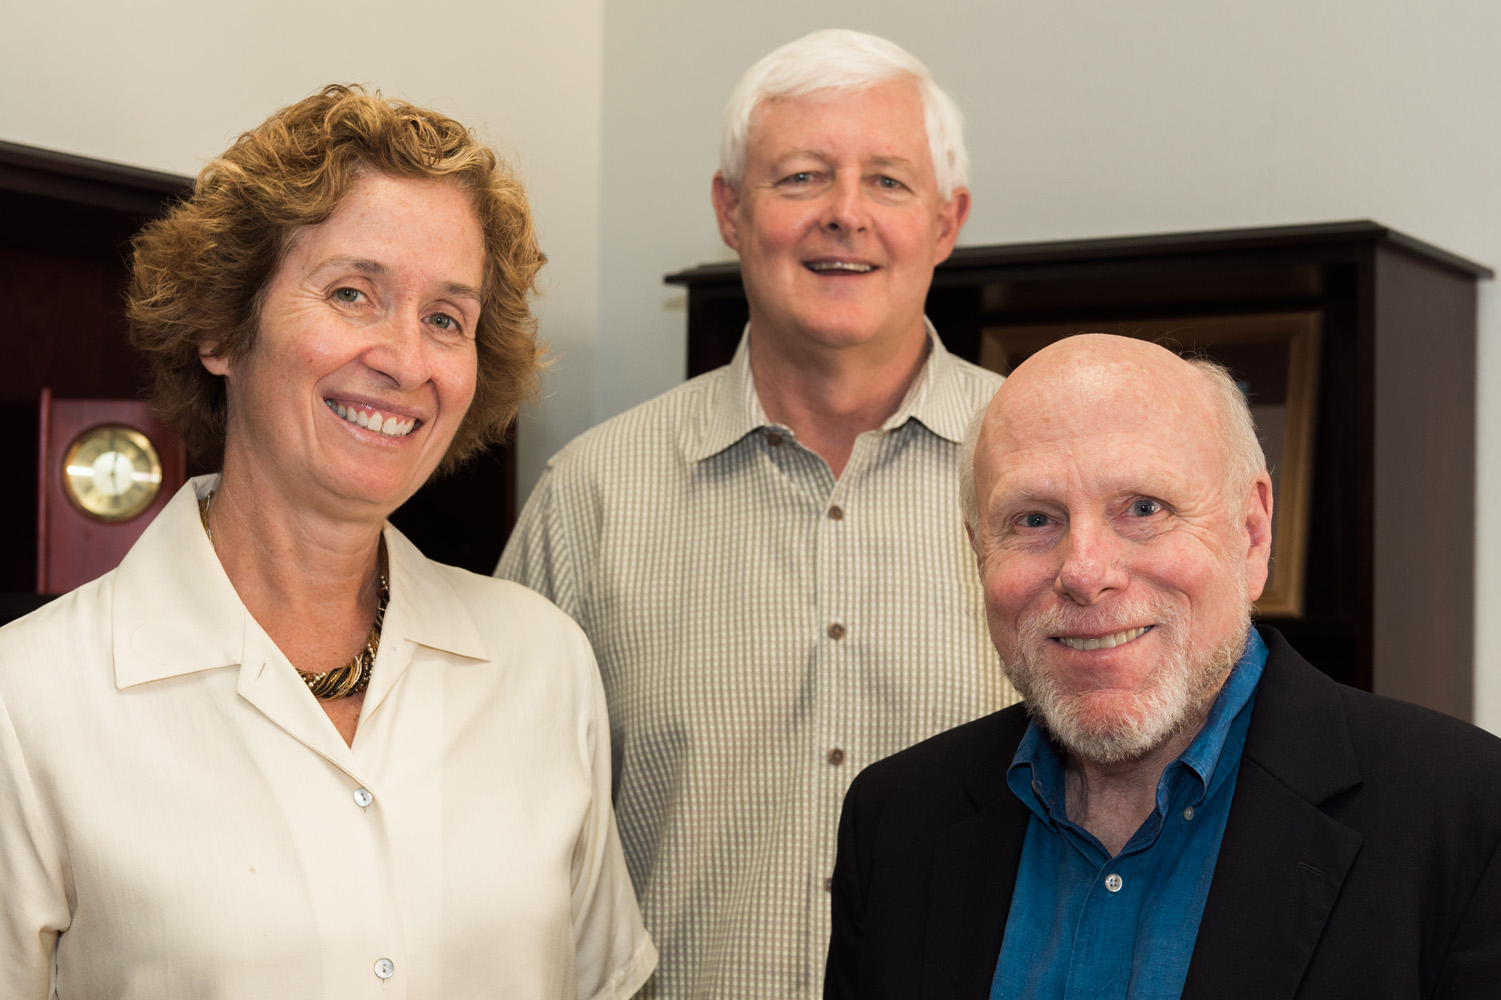 Dean Meigan Aronson and Drs. Valen Johnson and Raymond Carroll smile for the camera